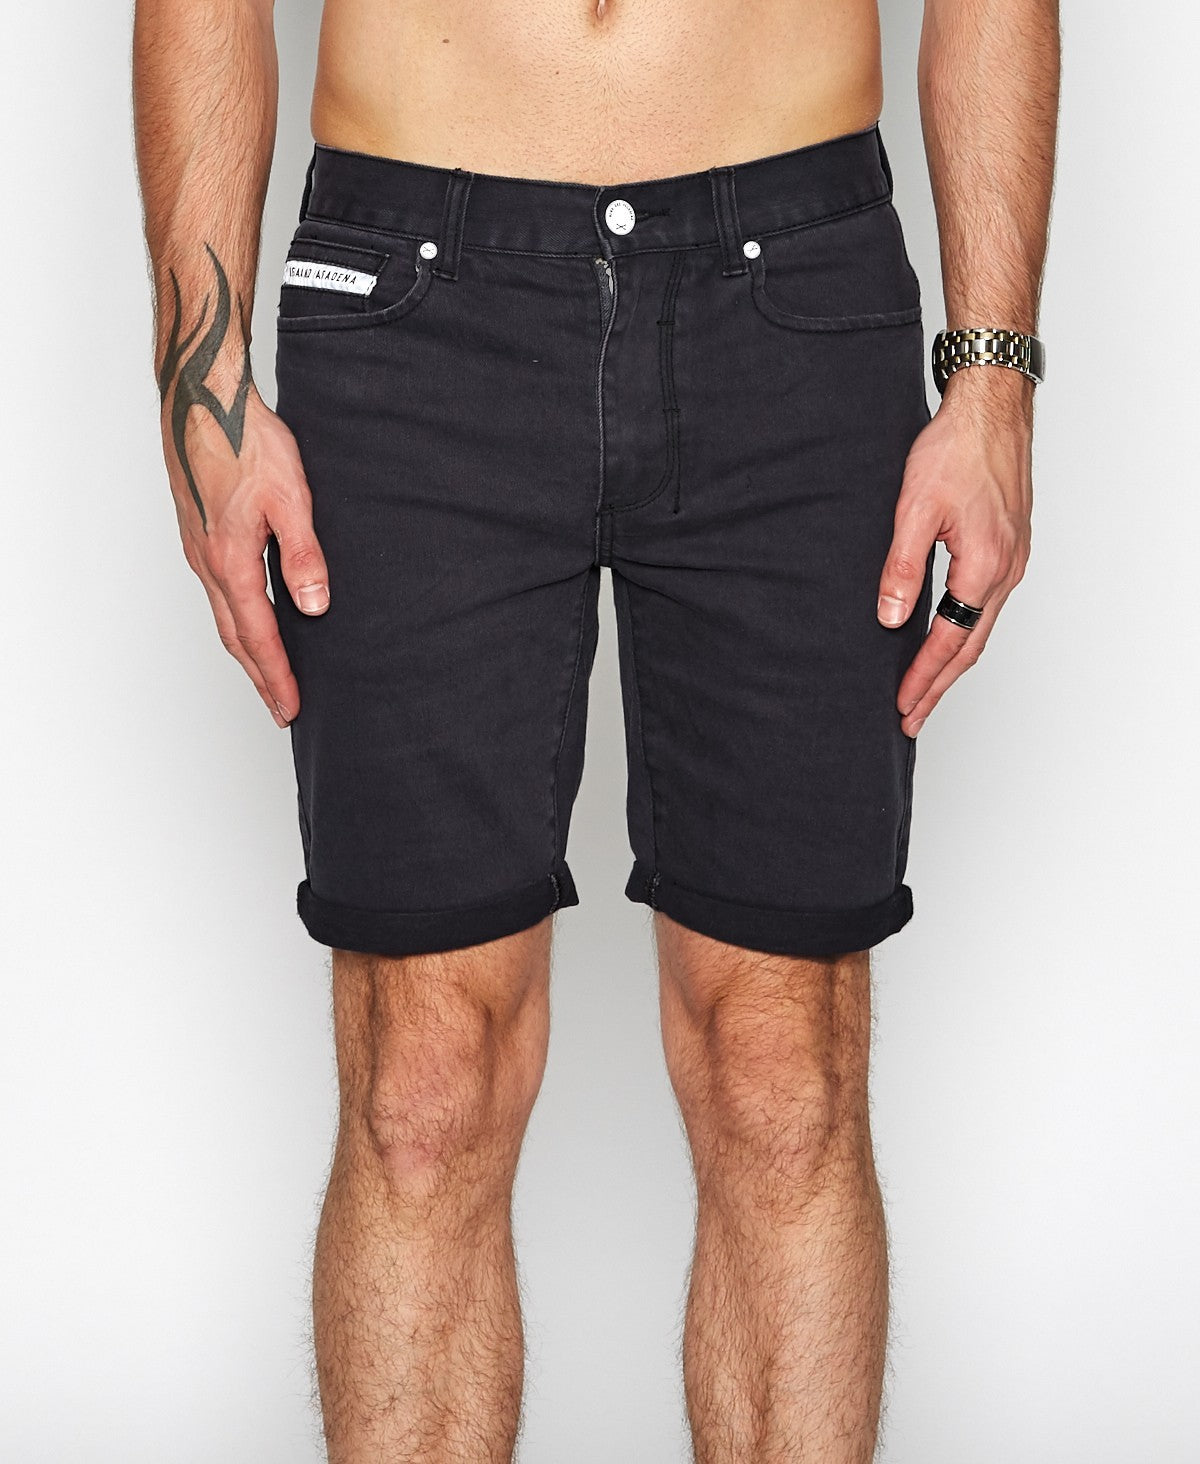 NxP Turn It Up Shorts - Charcoal - Forestwood Co